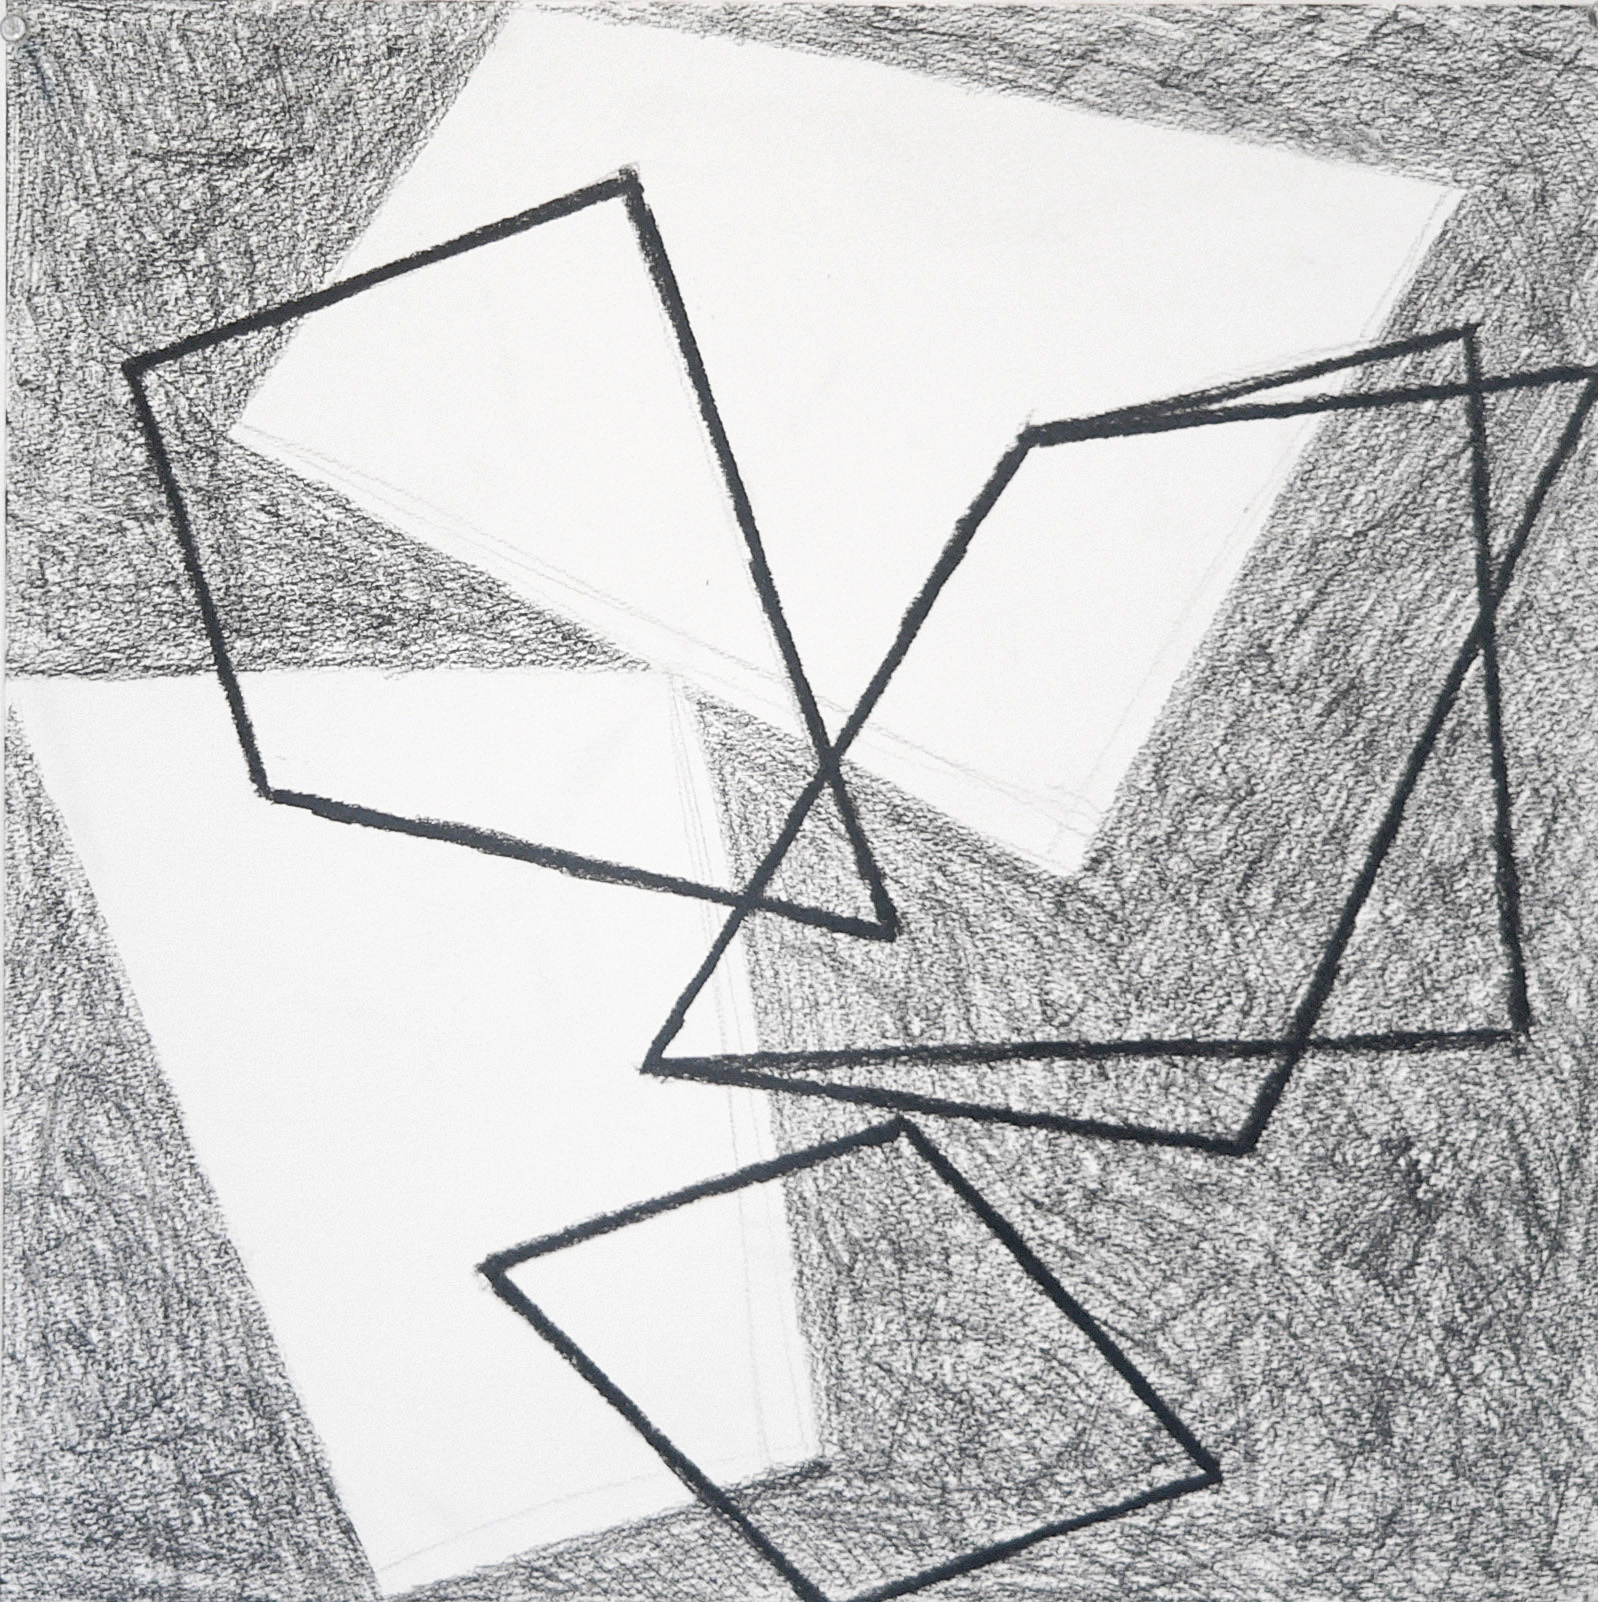 Bounce 5  18 x 18 in  Graphite on Canson Pastelle Paper